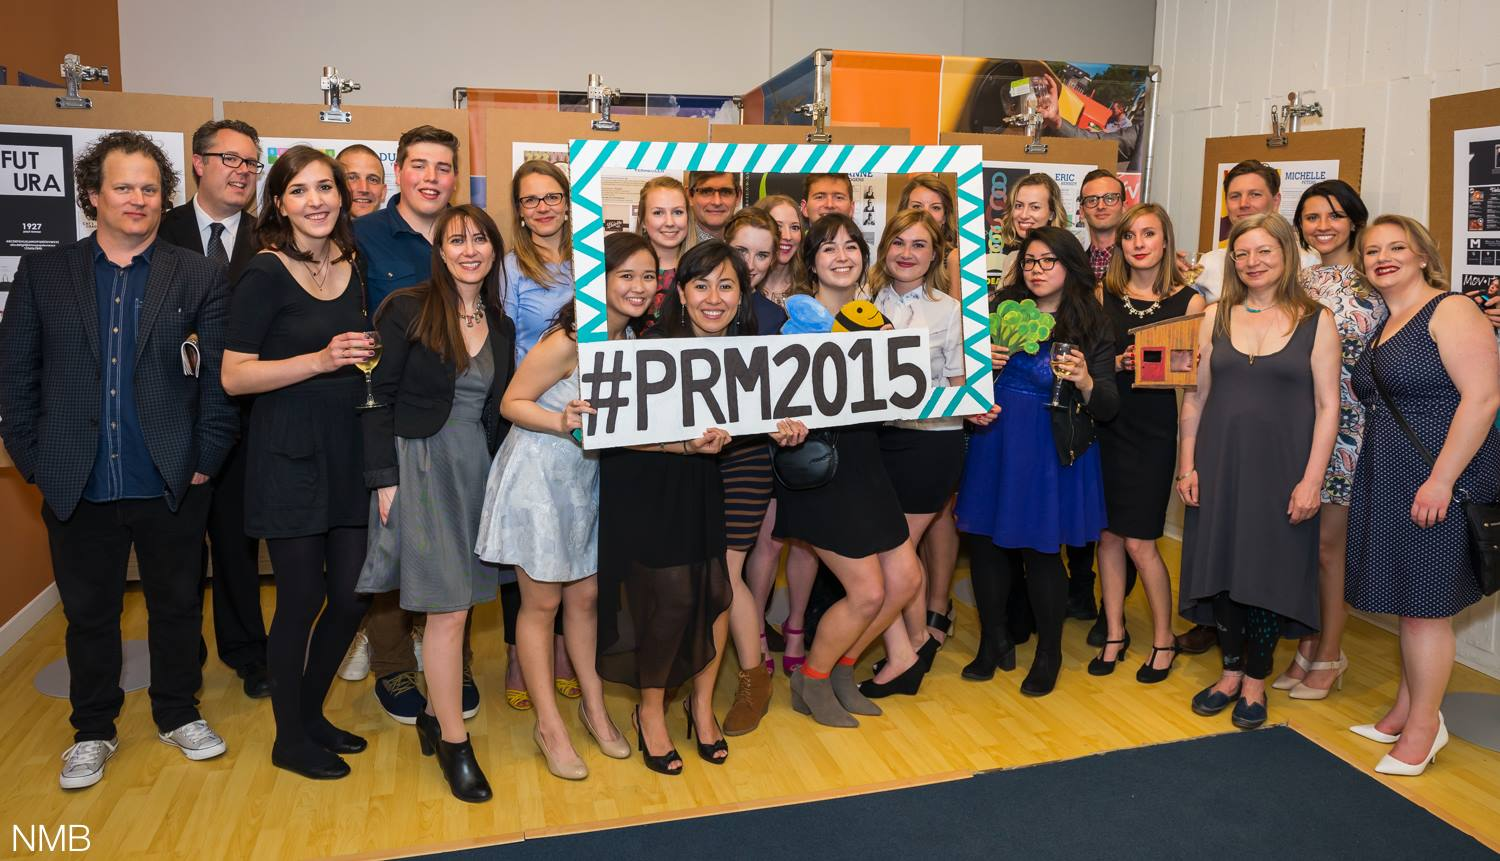 Welcome to PRM 2015